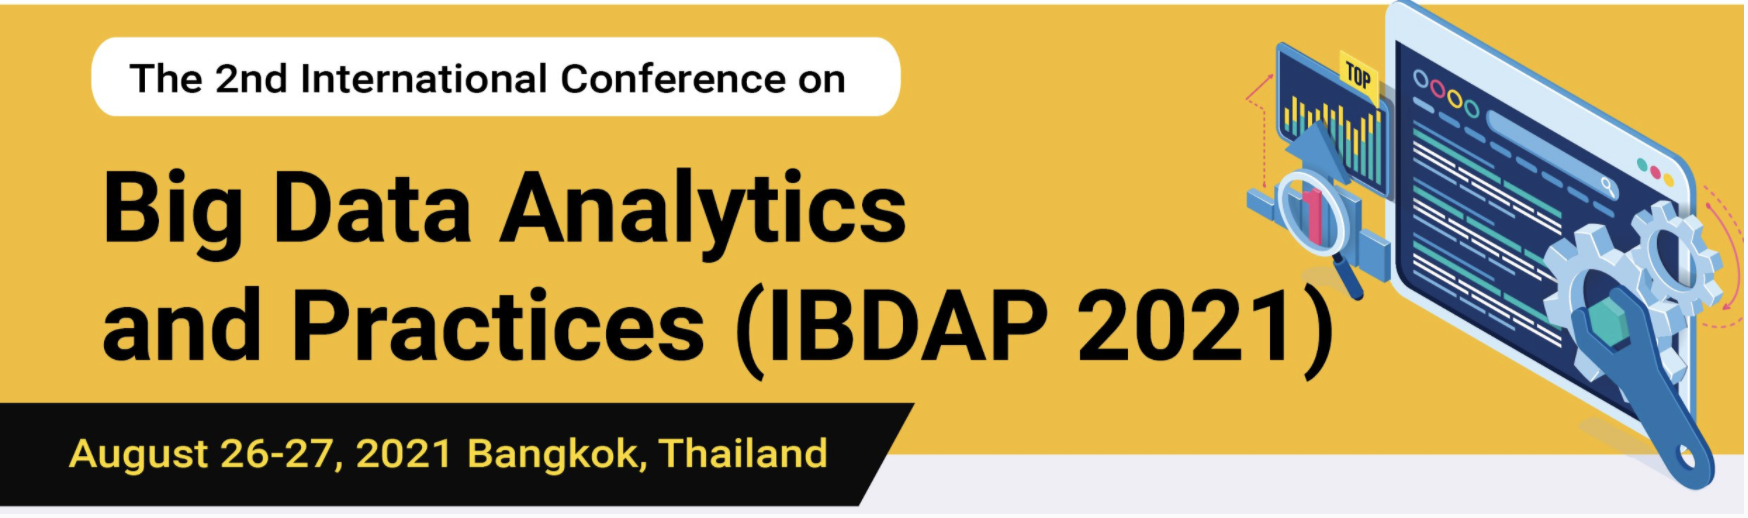 The International Conference on Big Data Analytics and Practices (IBDAP 2021)